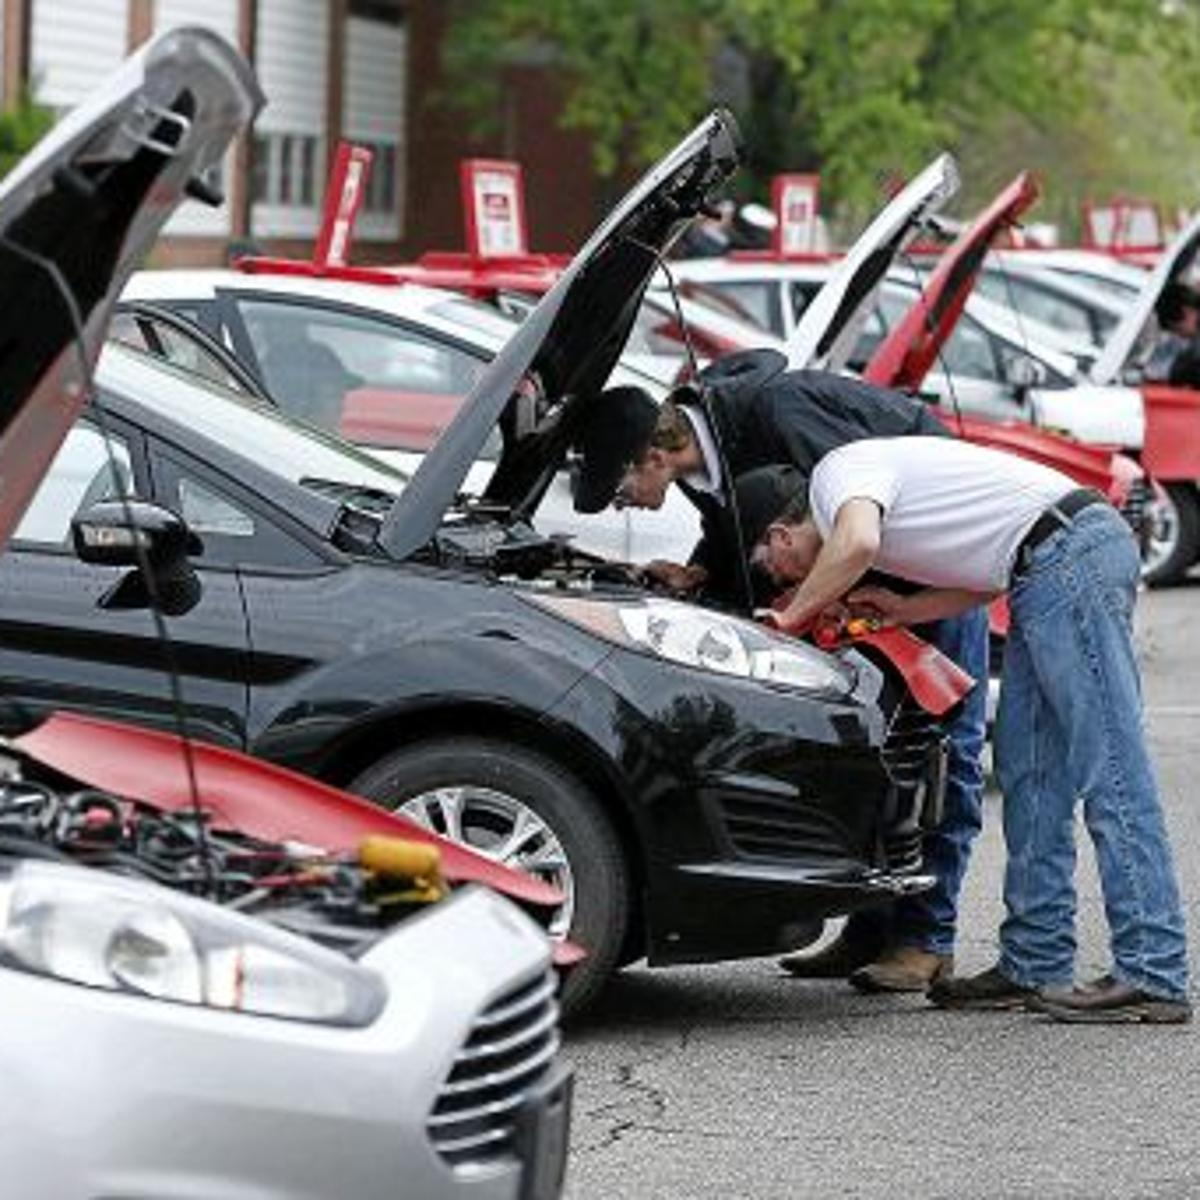 ford aaa auto skills competition tests oklahoma high school students offers scholarships local news tulsaworld com tulsa world